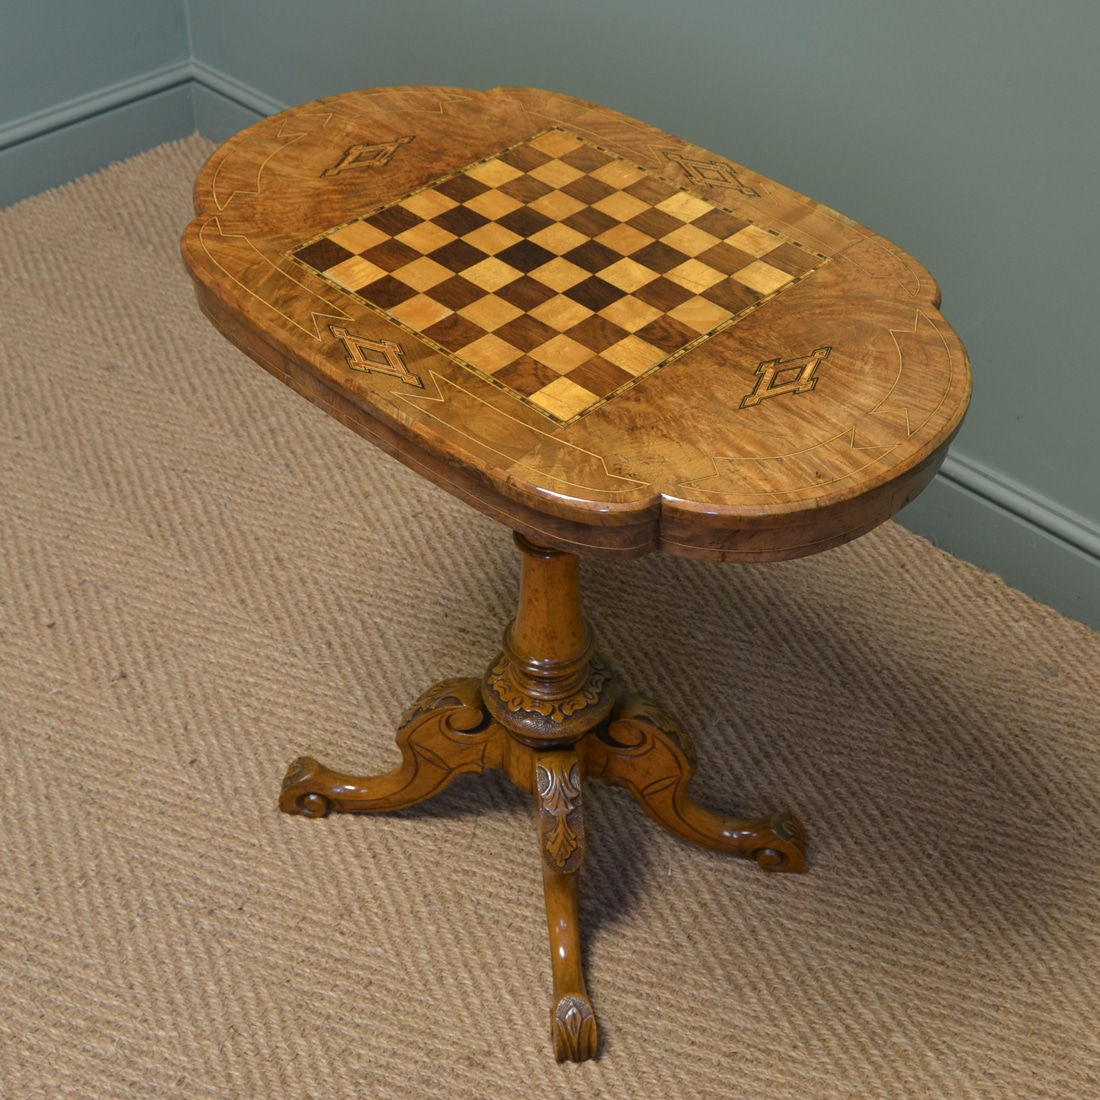 ... Buying Antique Furniture. Antiques · Stunning Victorian Figured Walnut  Antique Games Table - Hints And Tips When Buying Antique Furniture - Antiques World